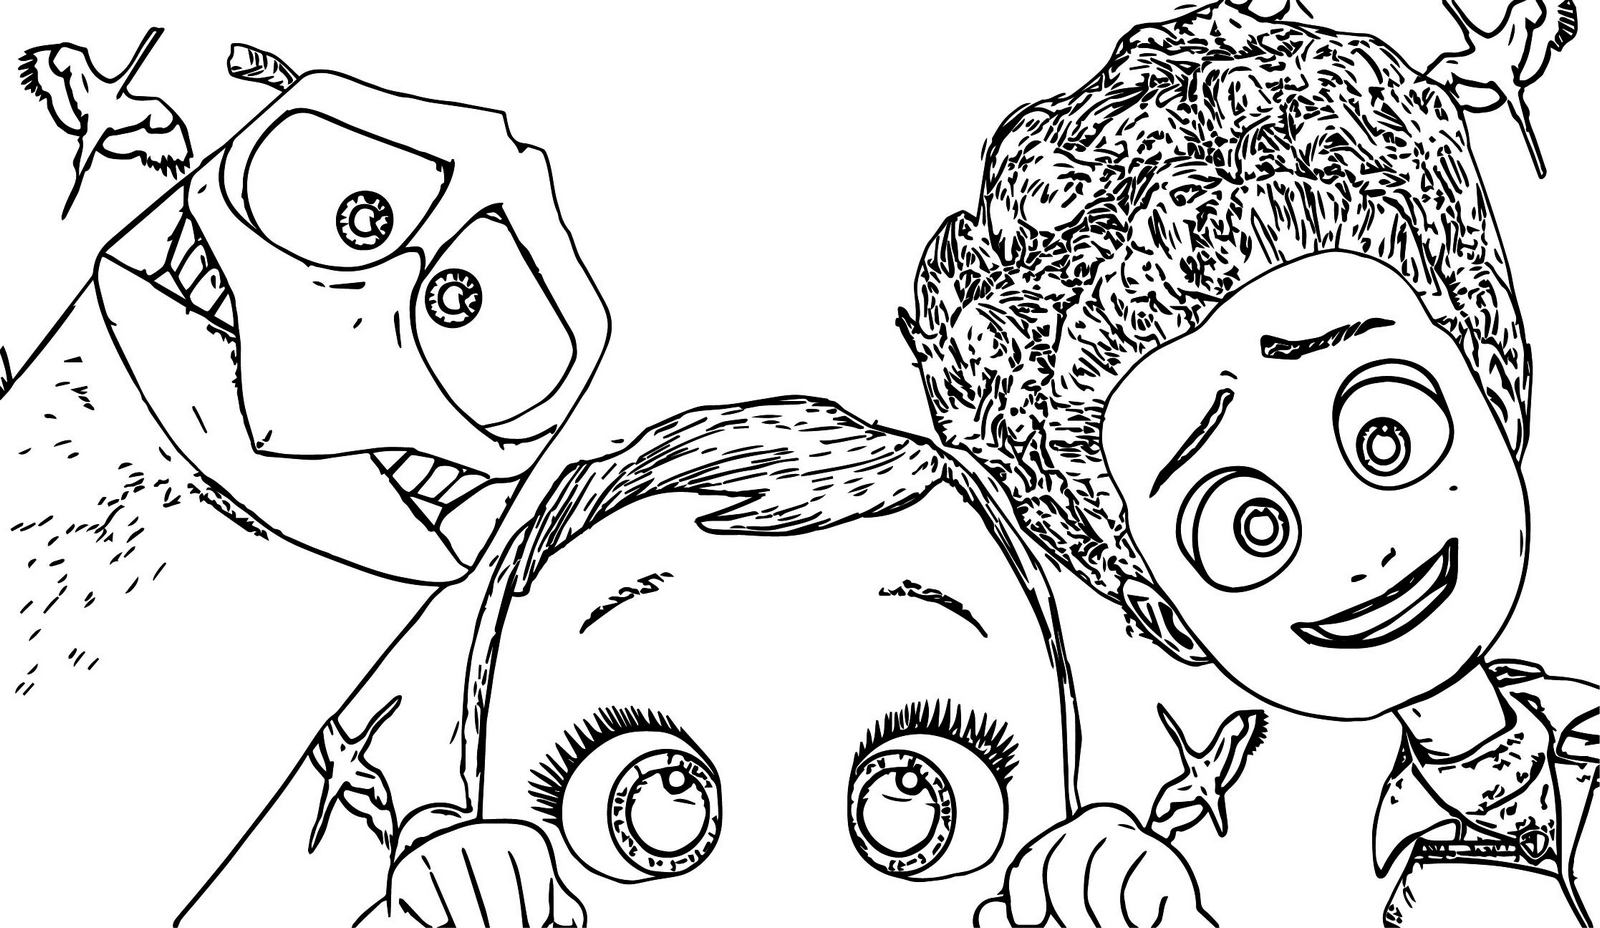 Storks Animated Comedy Film Coloring Pages